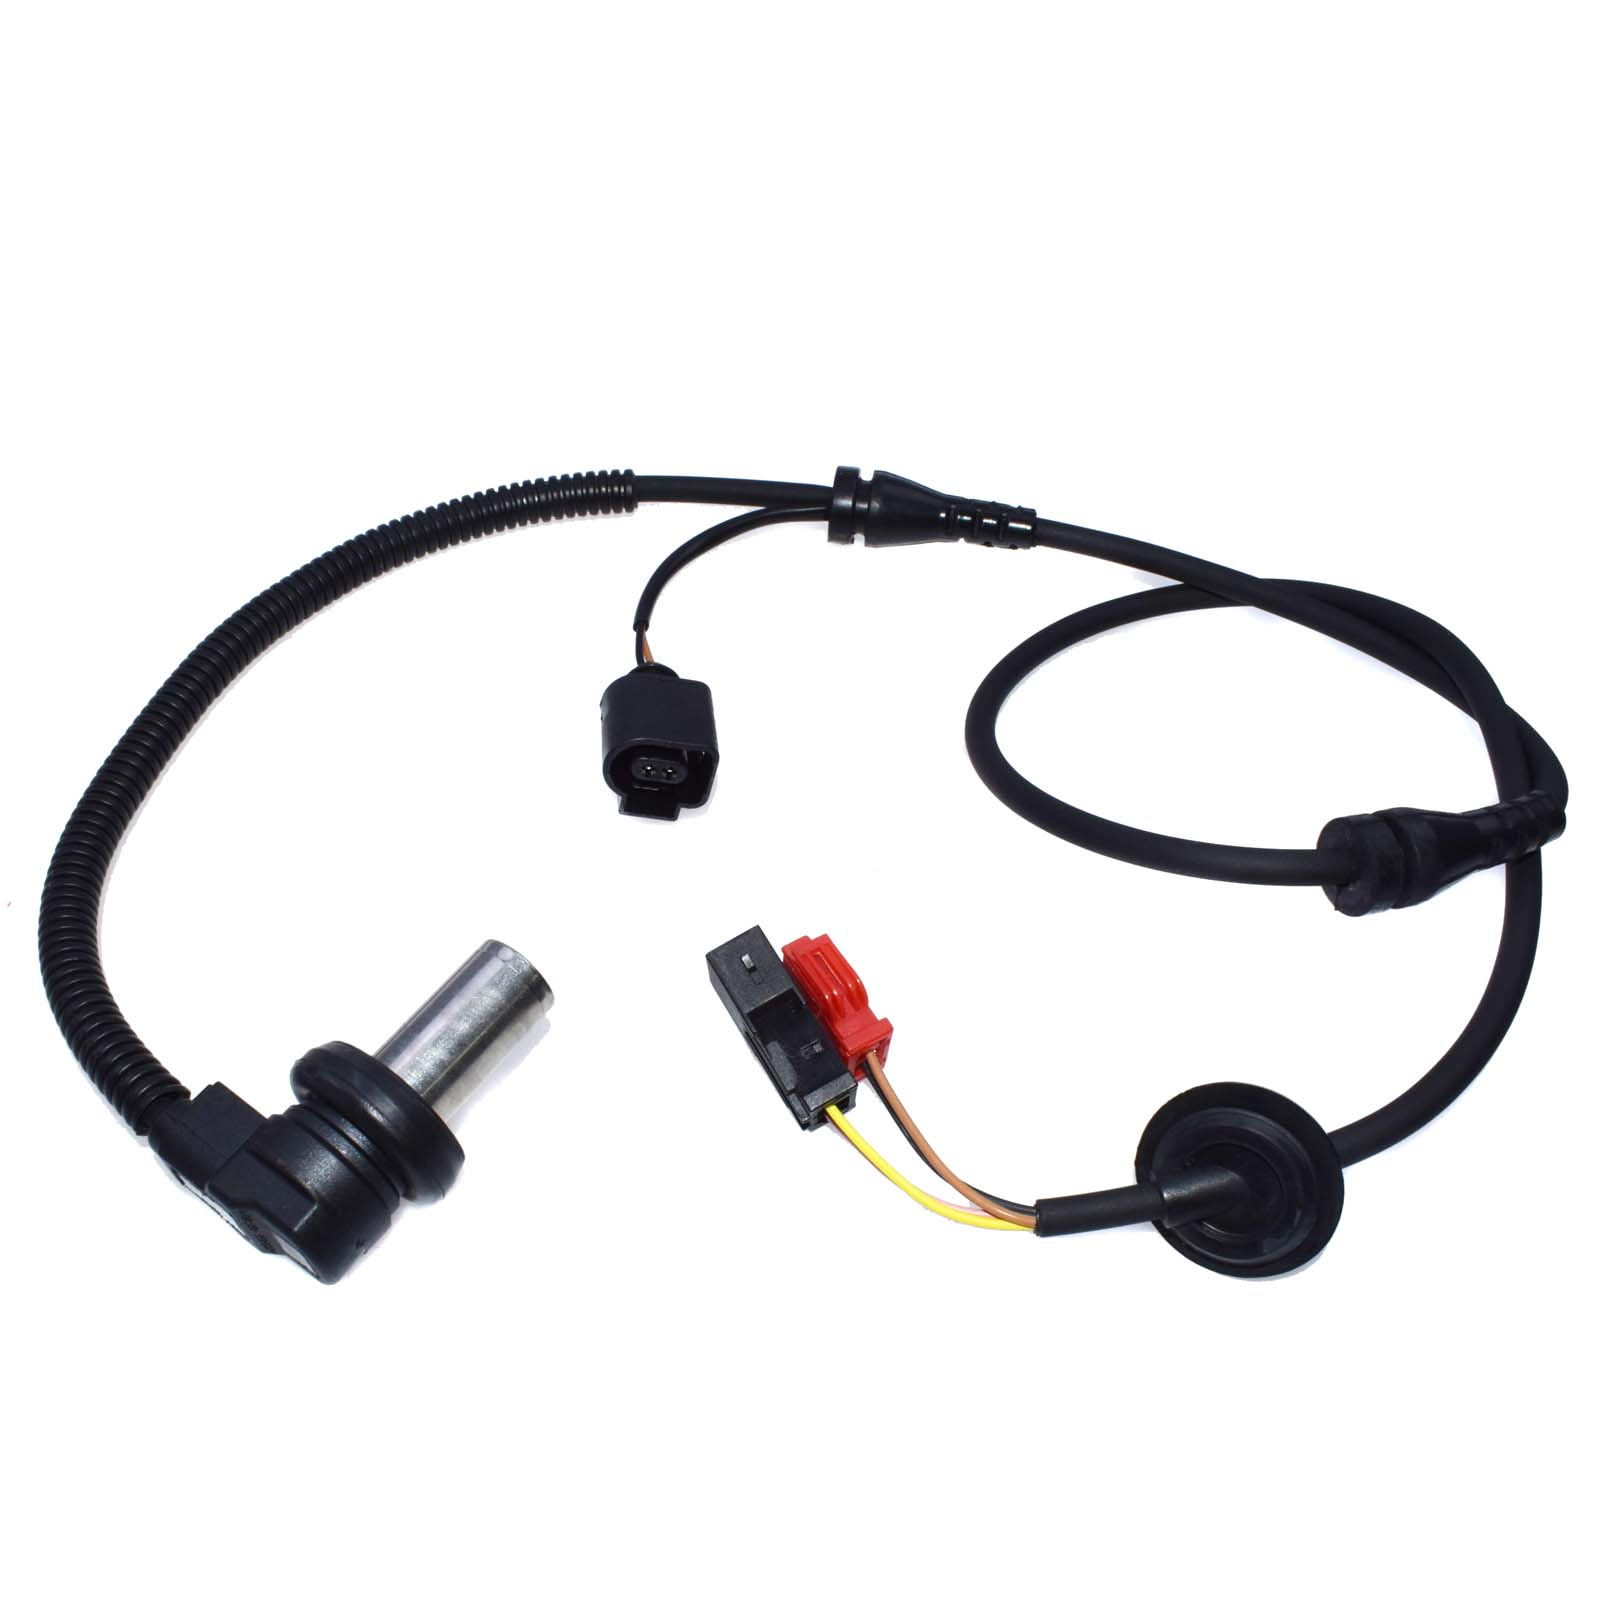 2 Front Left /& Right ABS Speed Sensor For Audi A4 Quattro 1.8L 2.8L 2000-2001